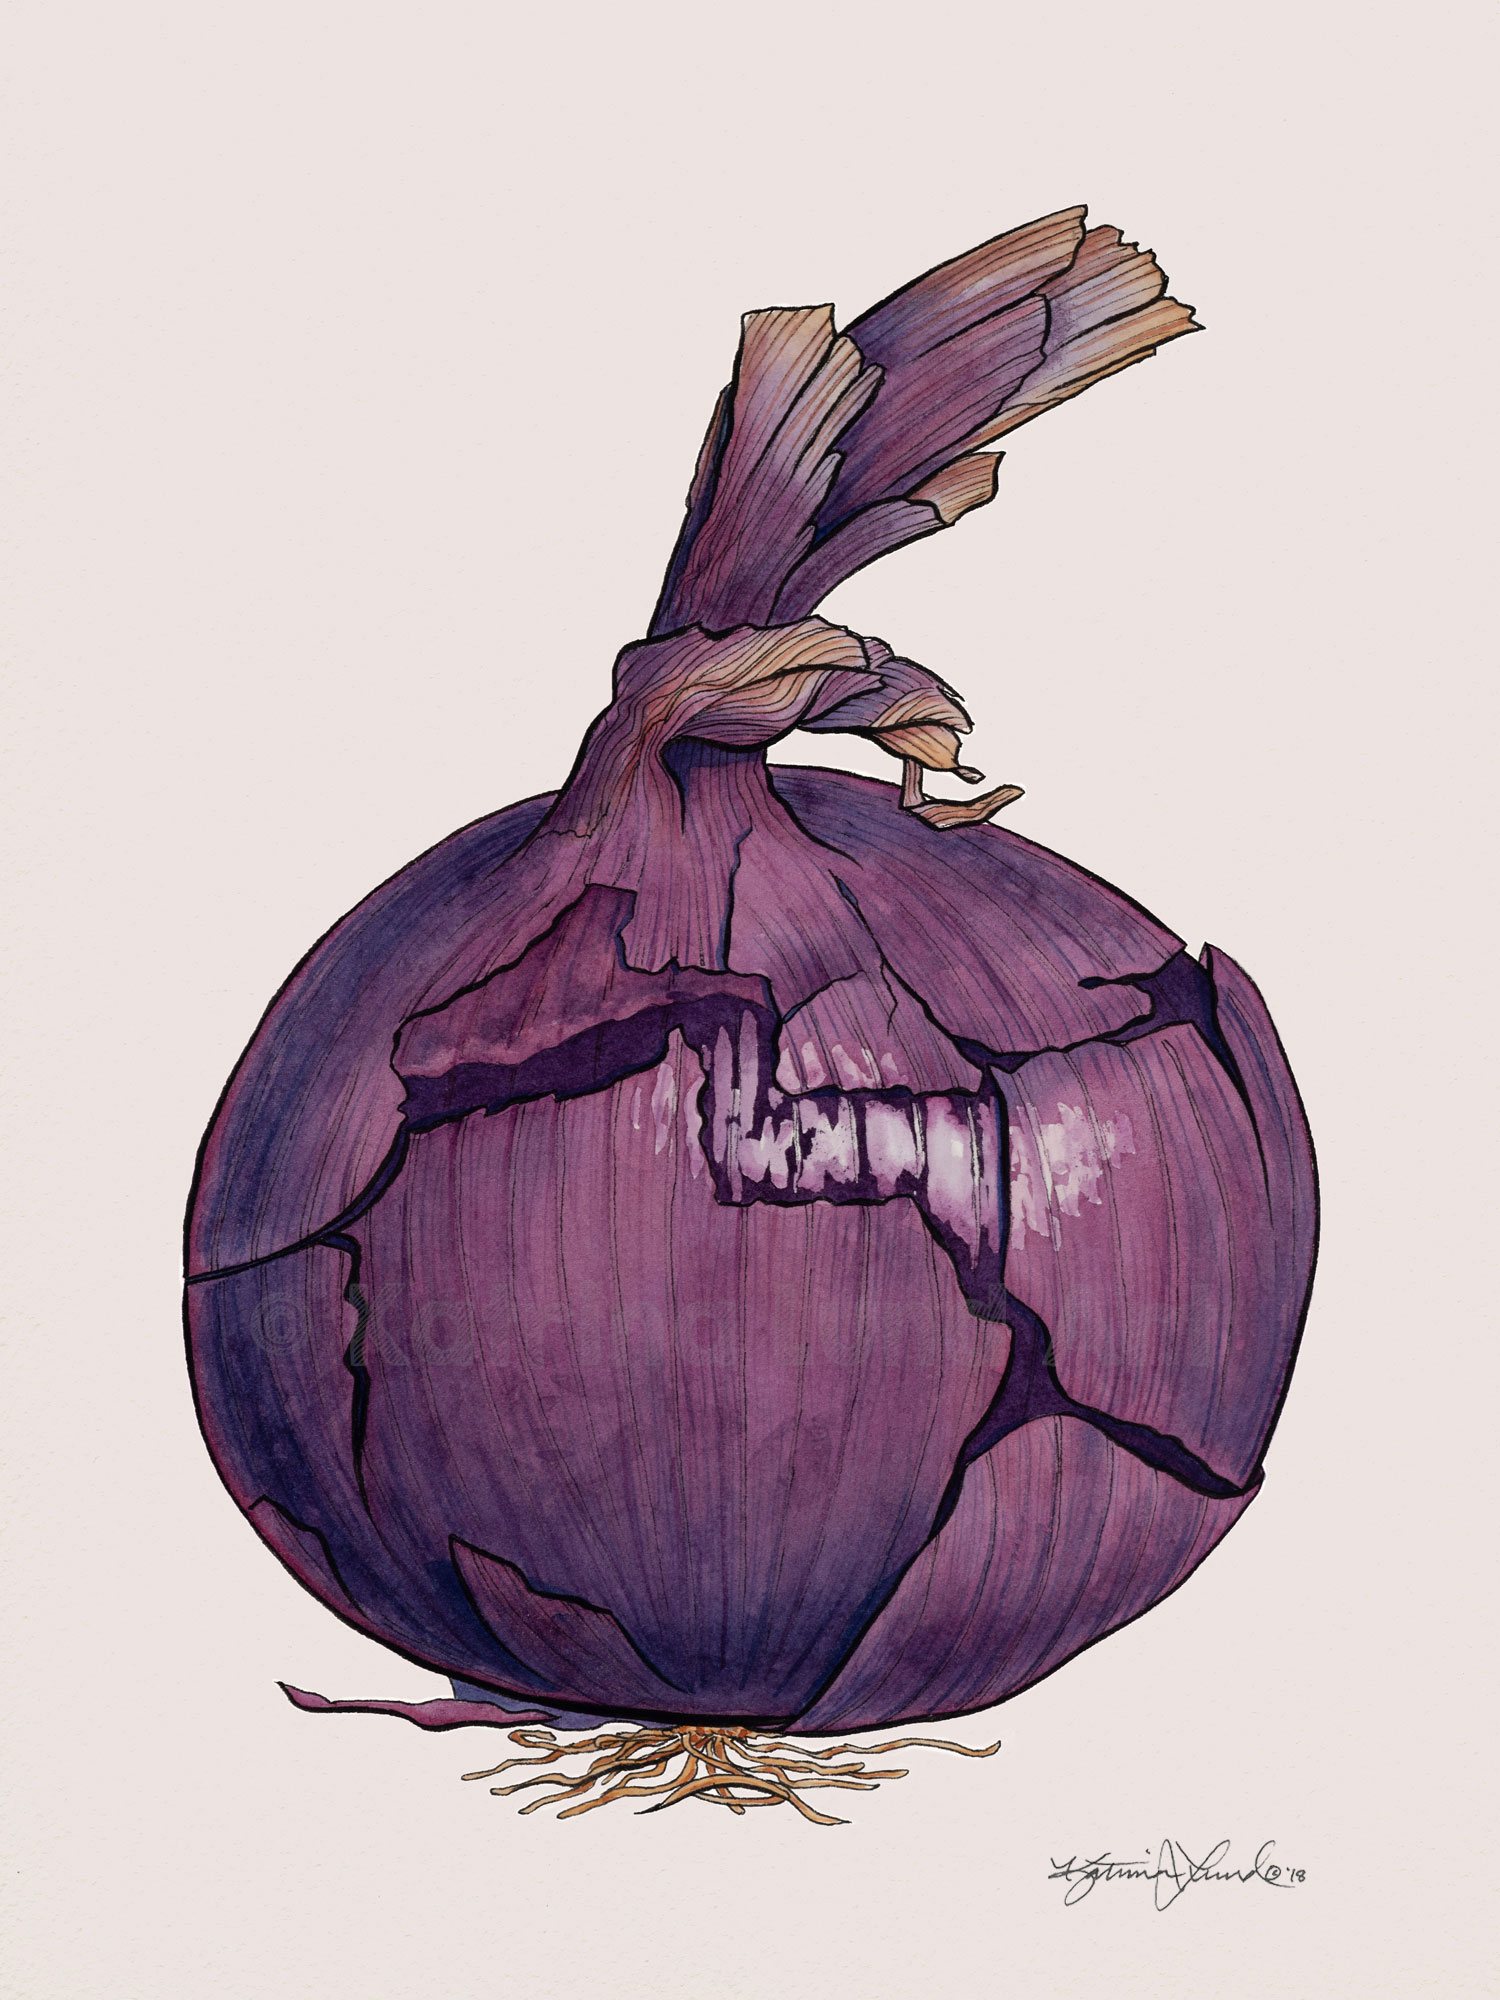 Onion by Day